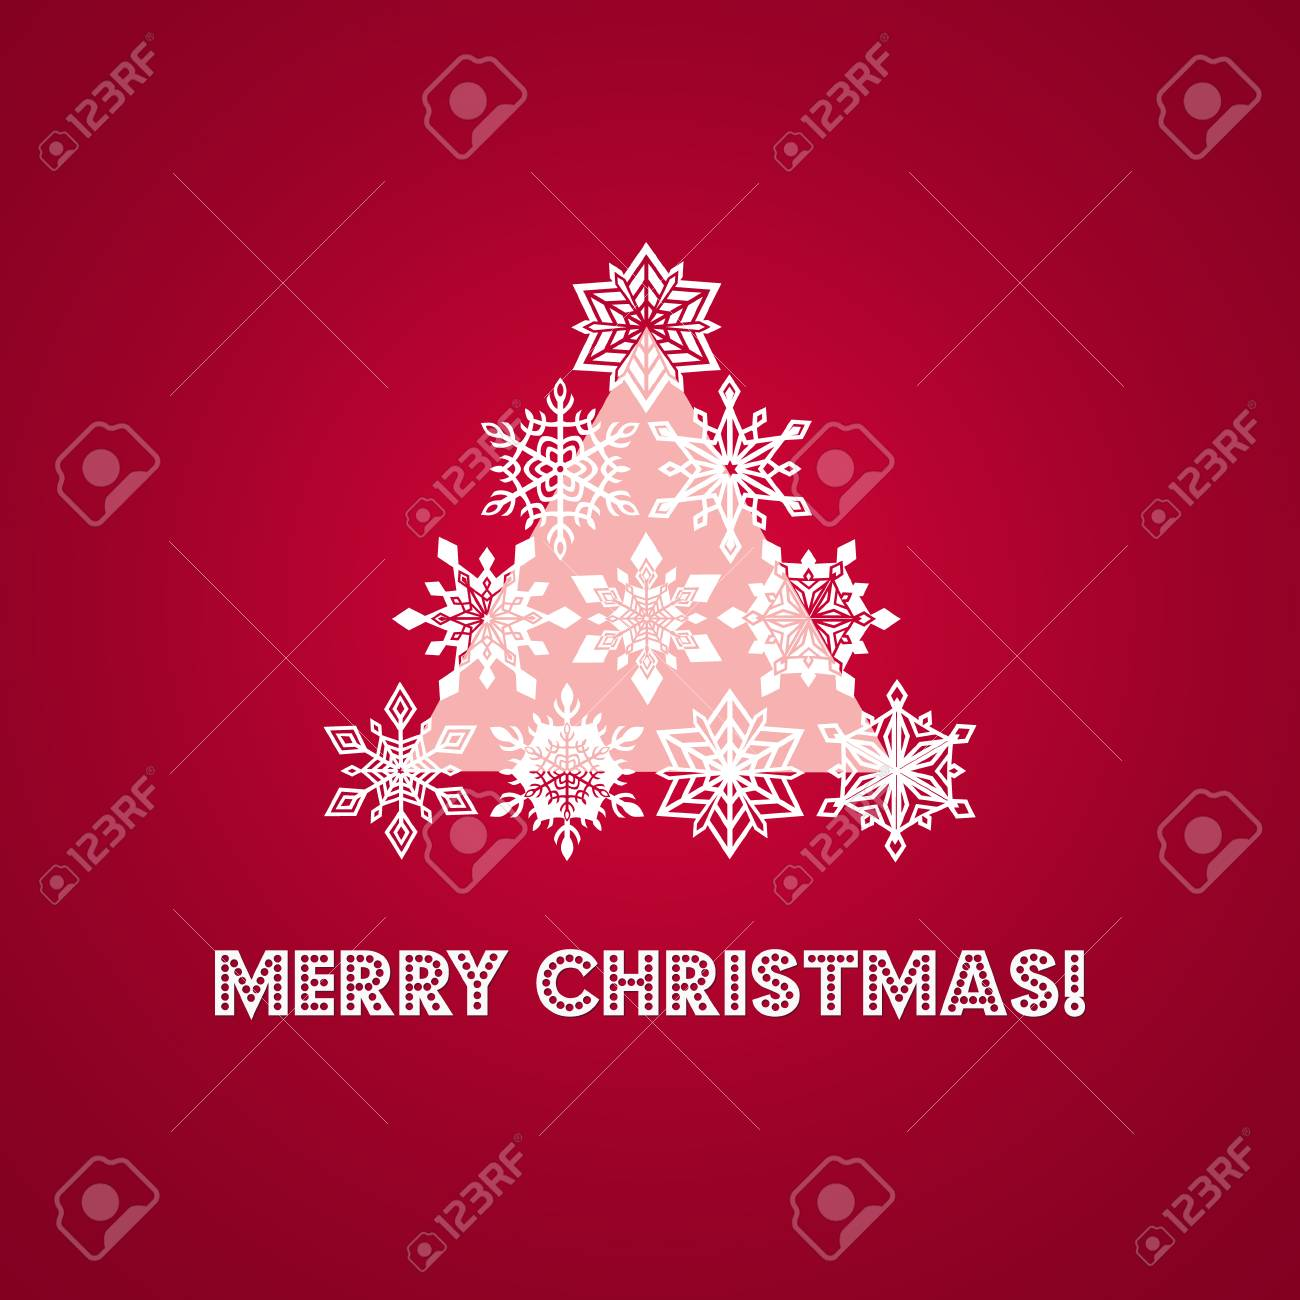 Merry christmas greeting card with words and tree from white merry christmas greeting card with words and tree from white lace snowflakes plus geometric triangle base kristyandbryce Image collections